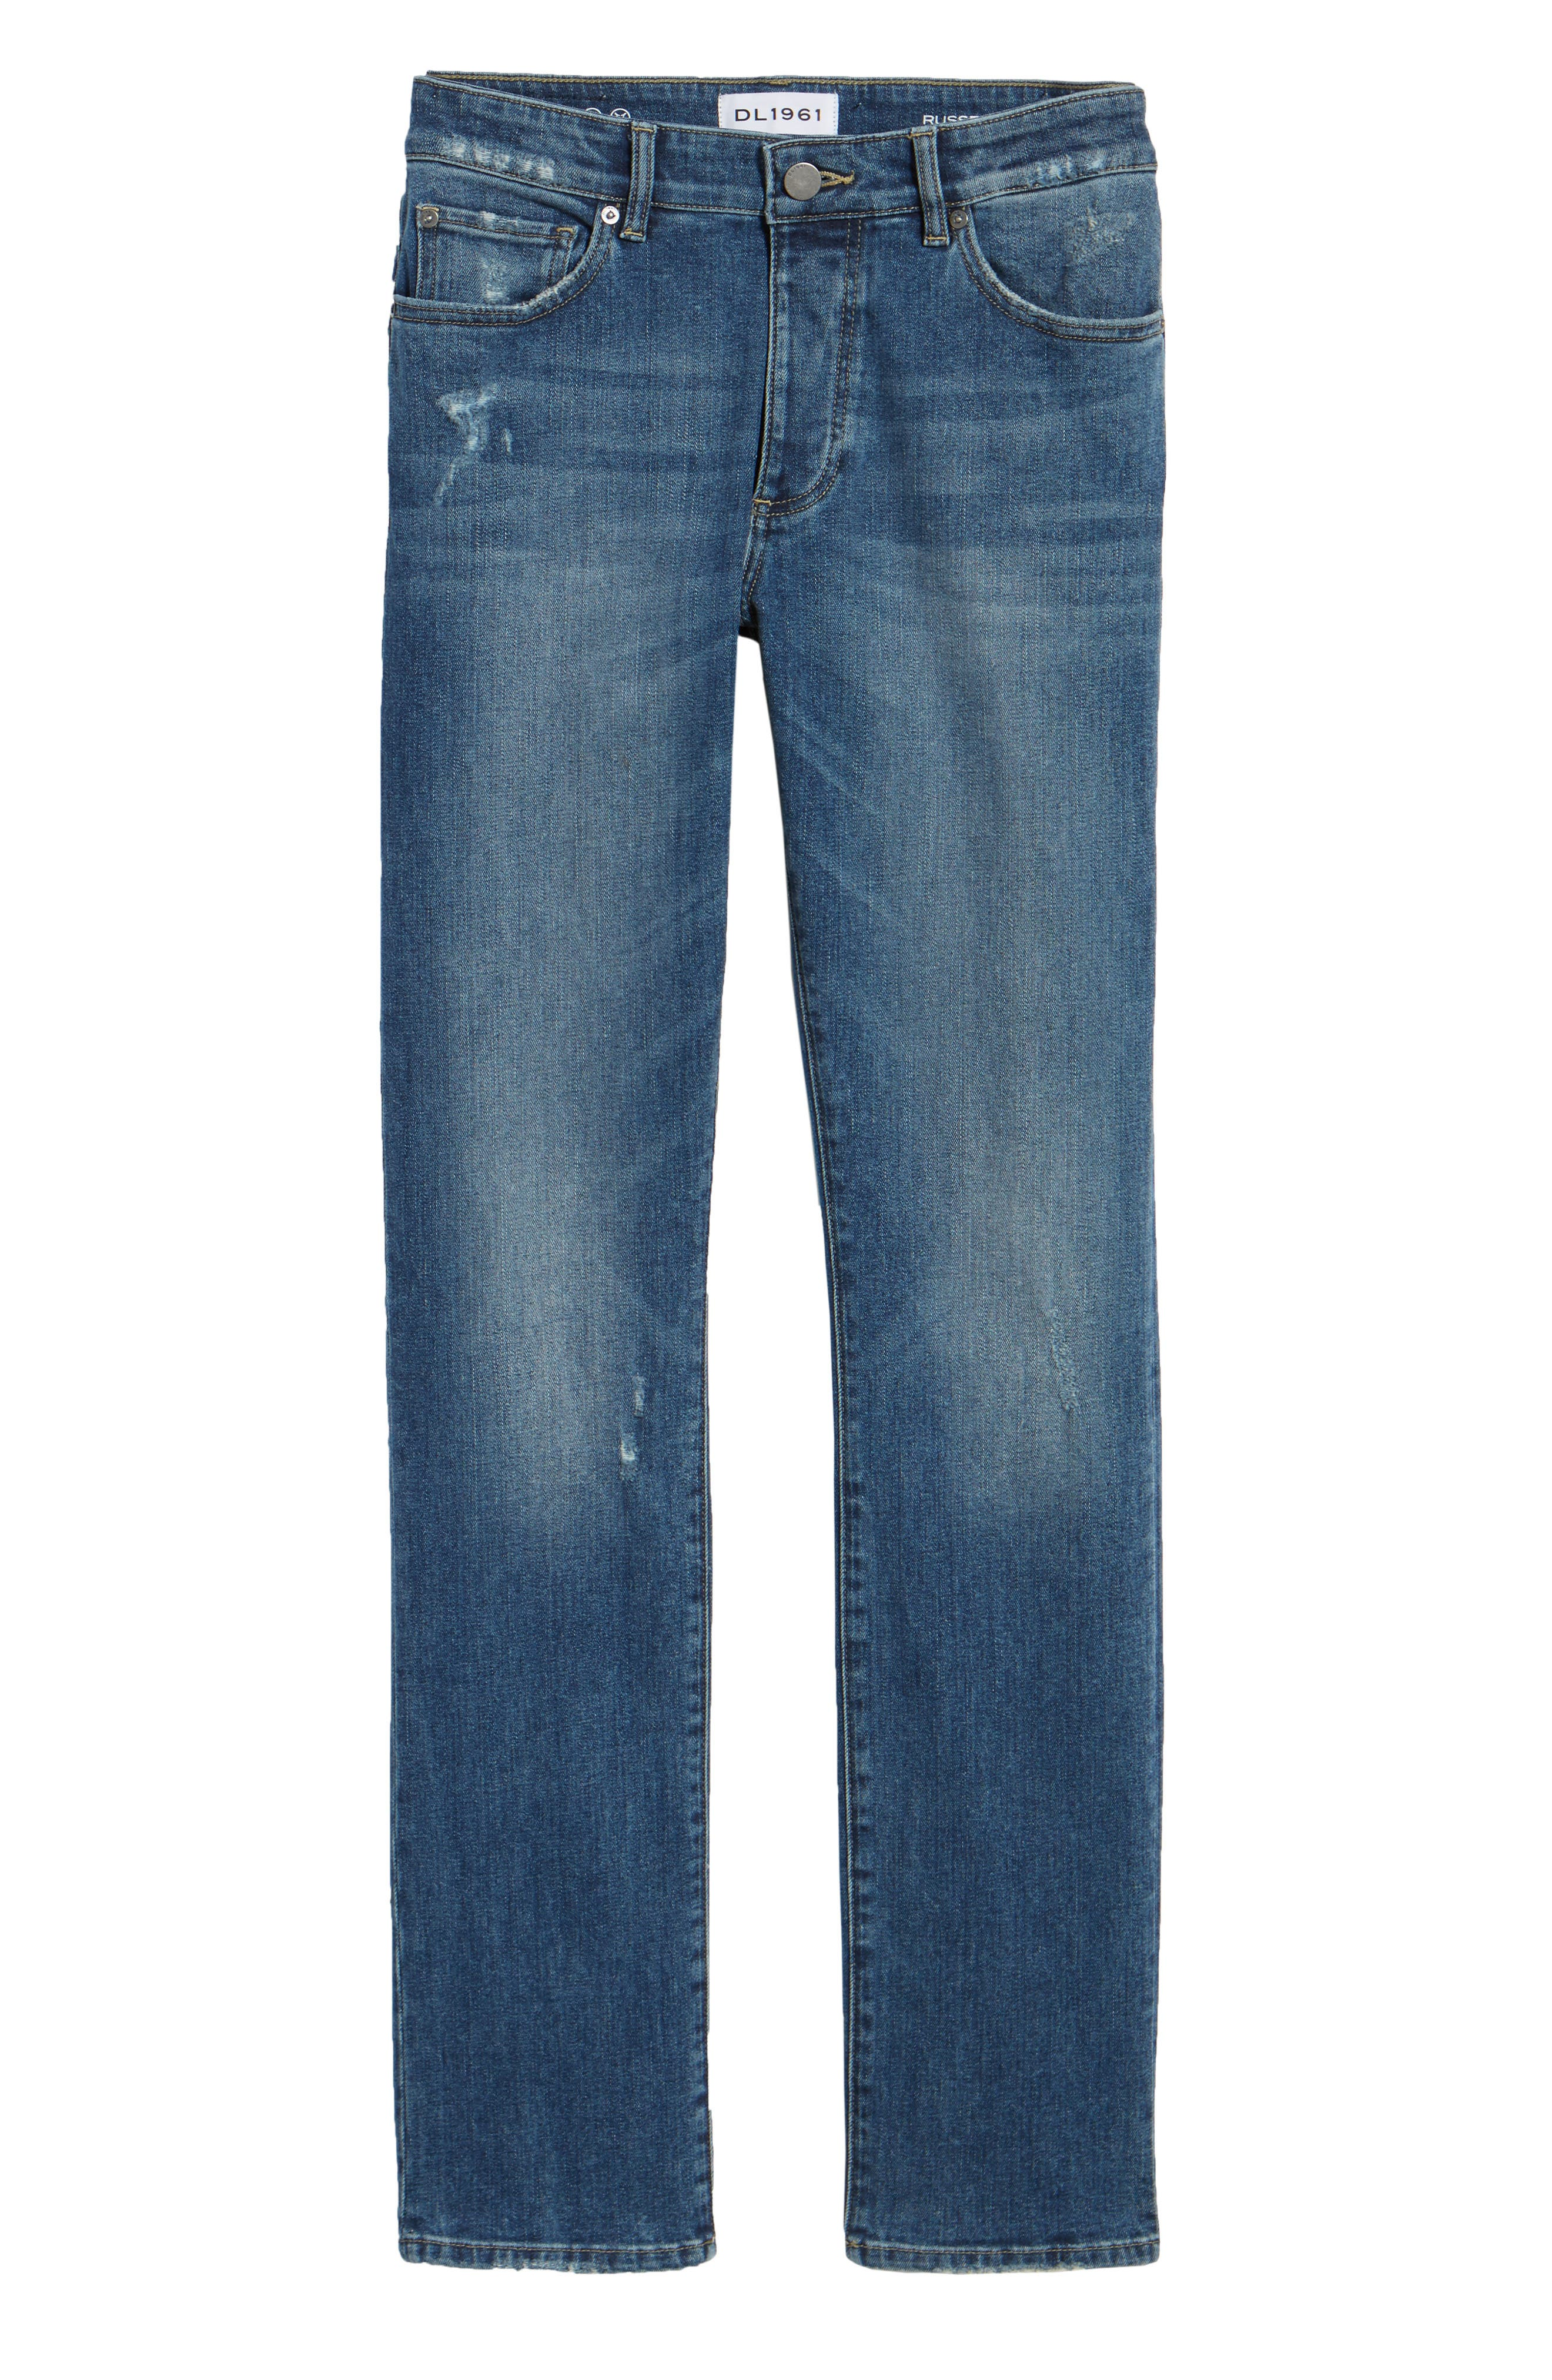 Russell Slim Straight Fit Jeans,                             Alternate thumbnail 6, color,                             Twine